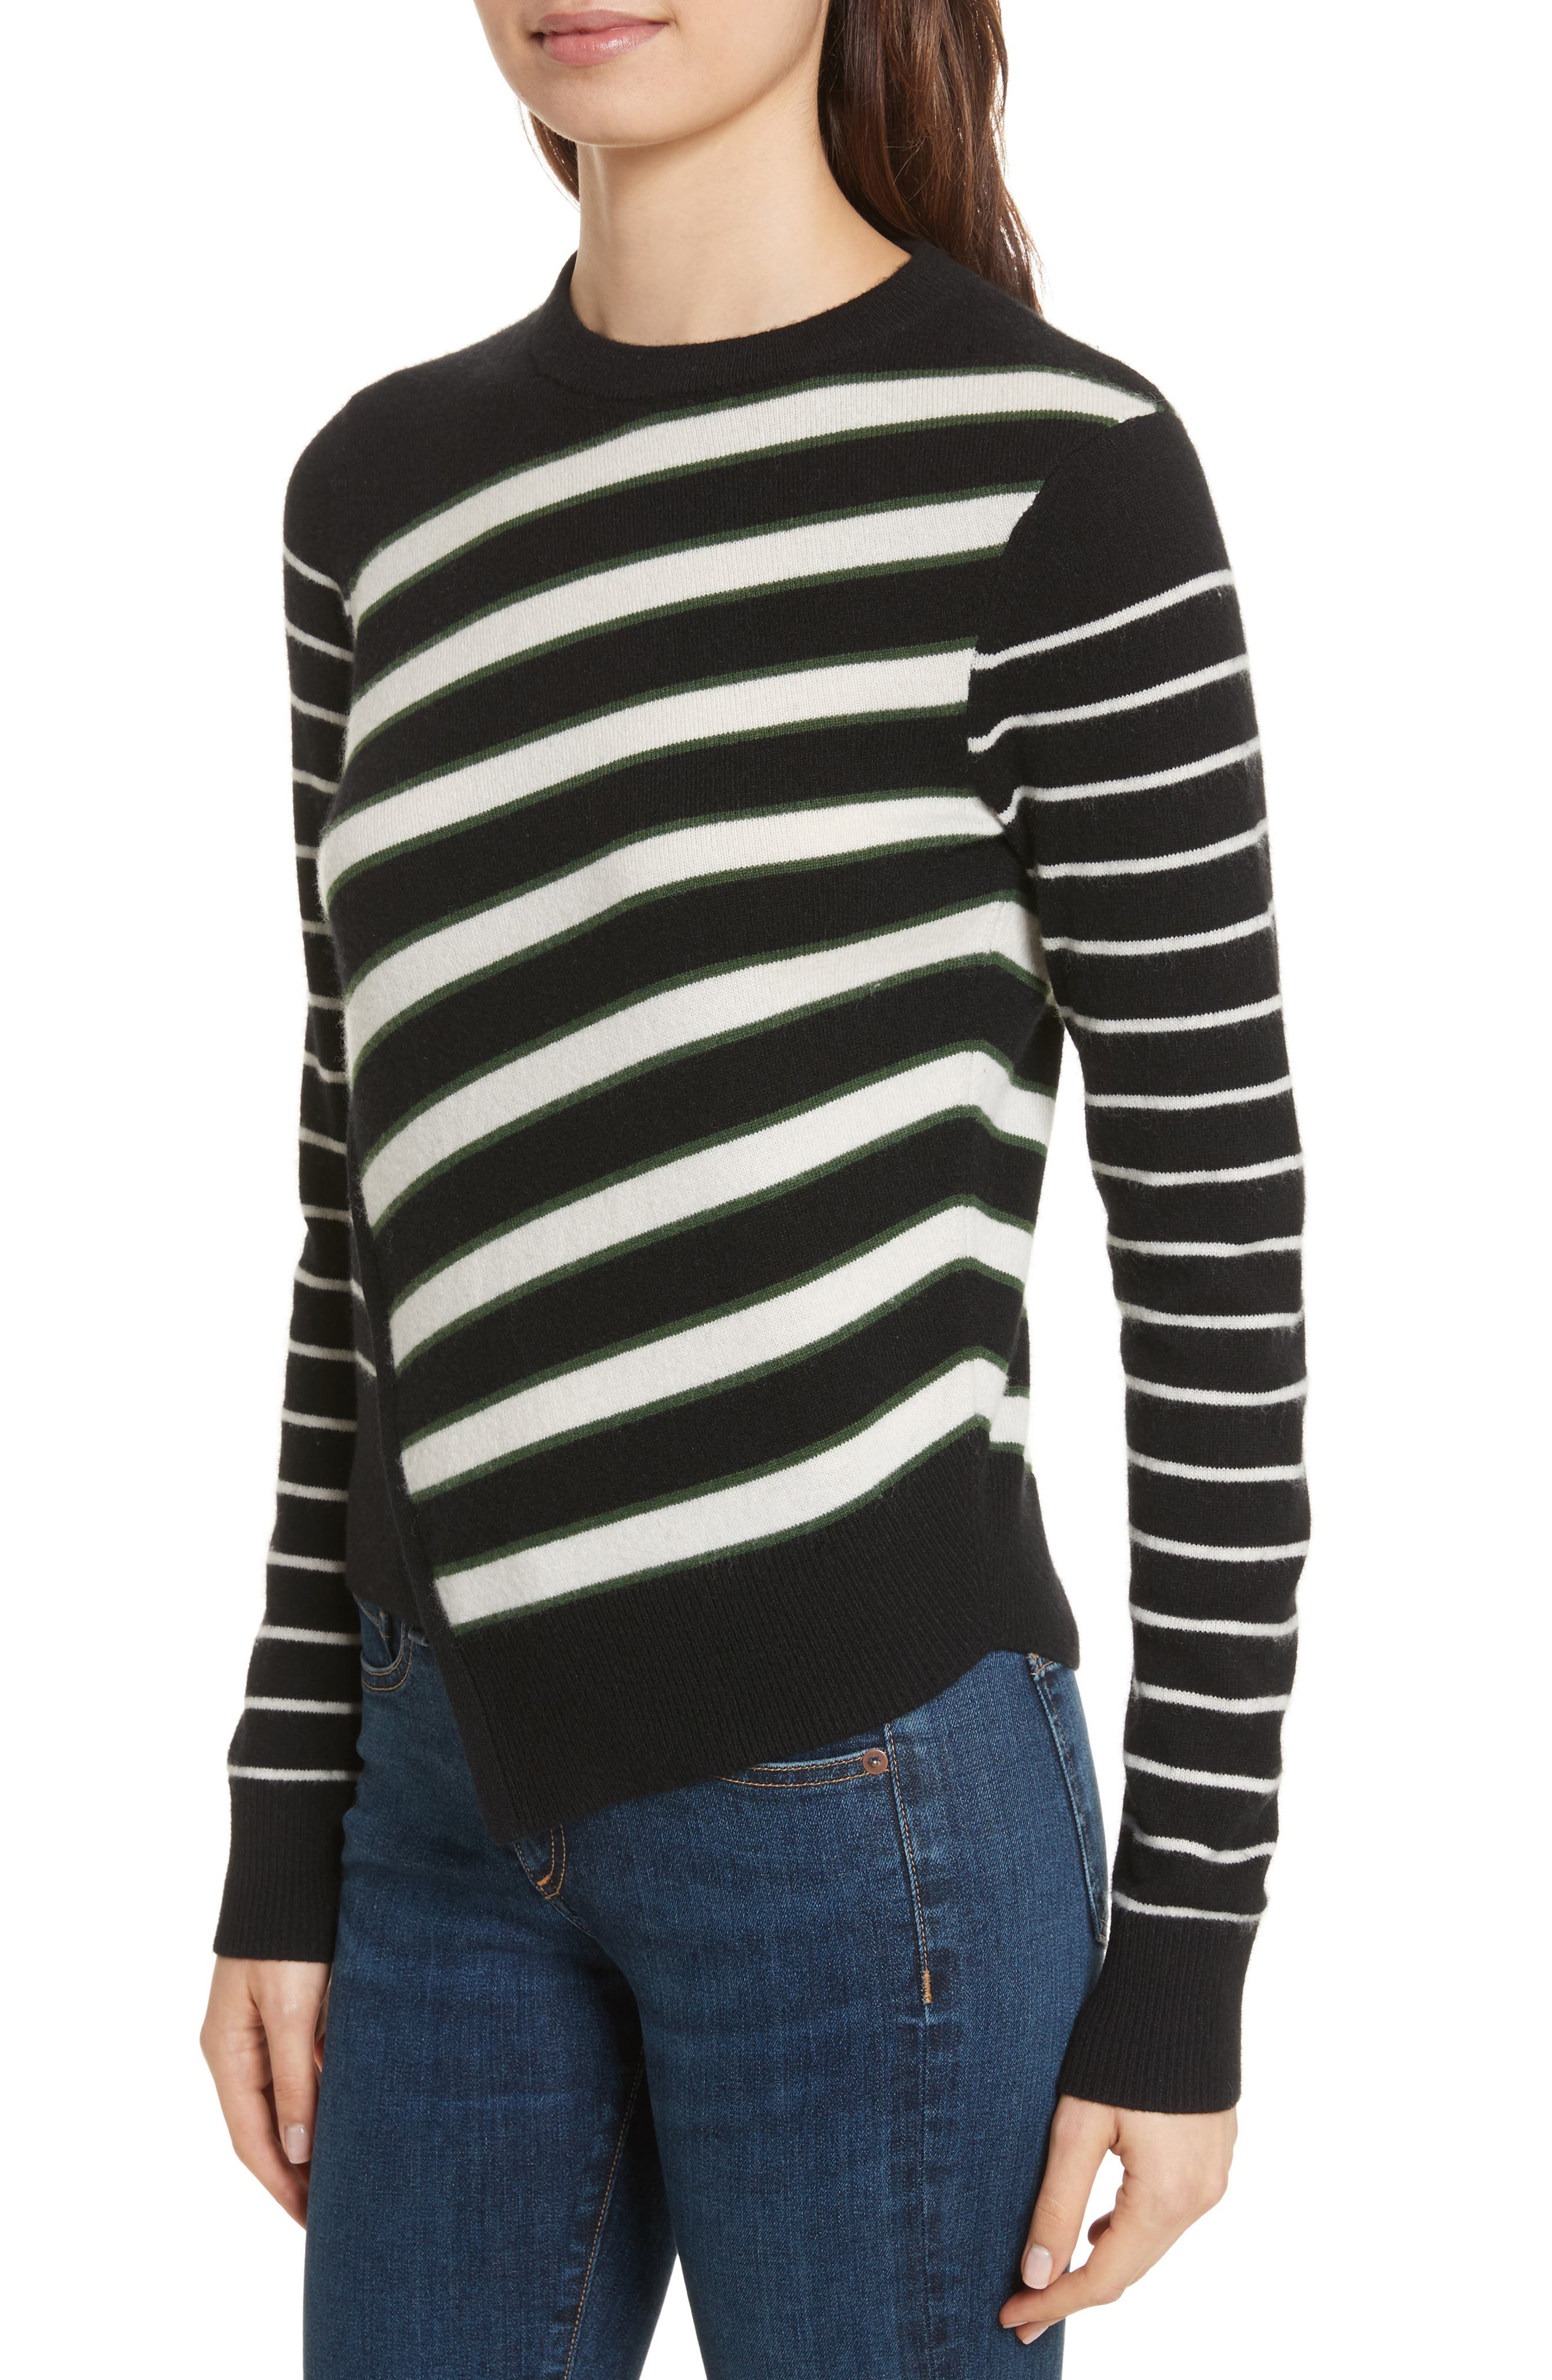 Pepper Cashmere Sweater,                             Alternate thumbnail 4, color,